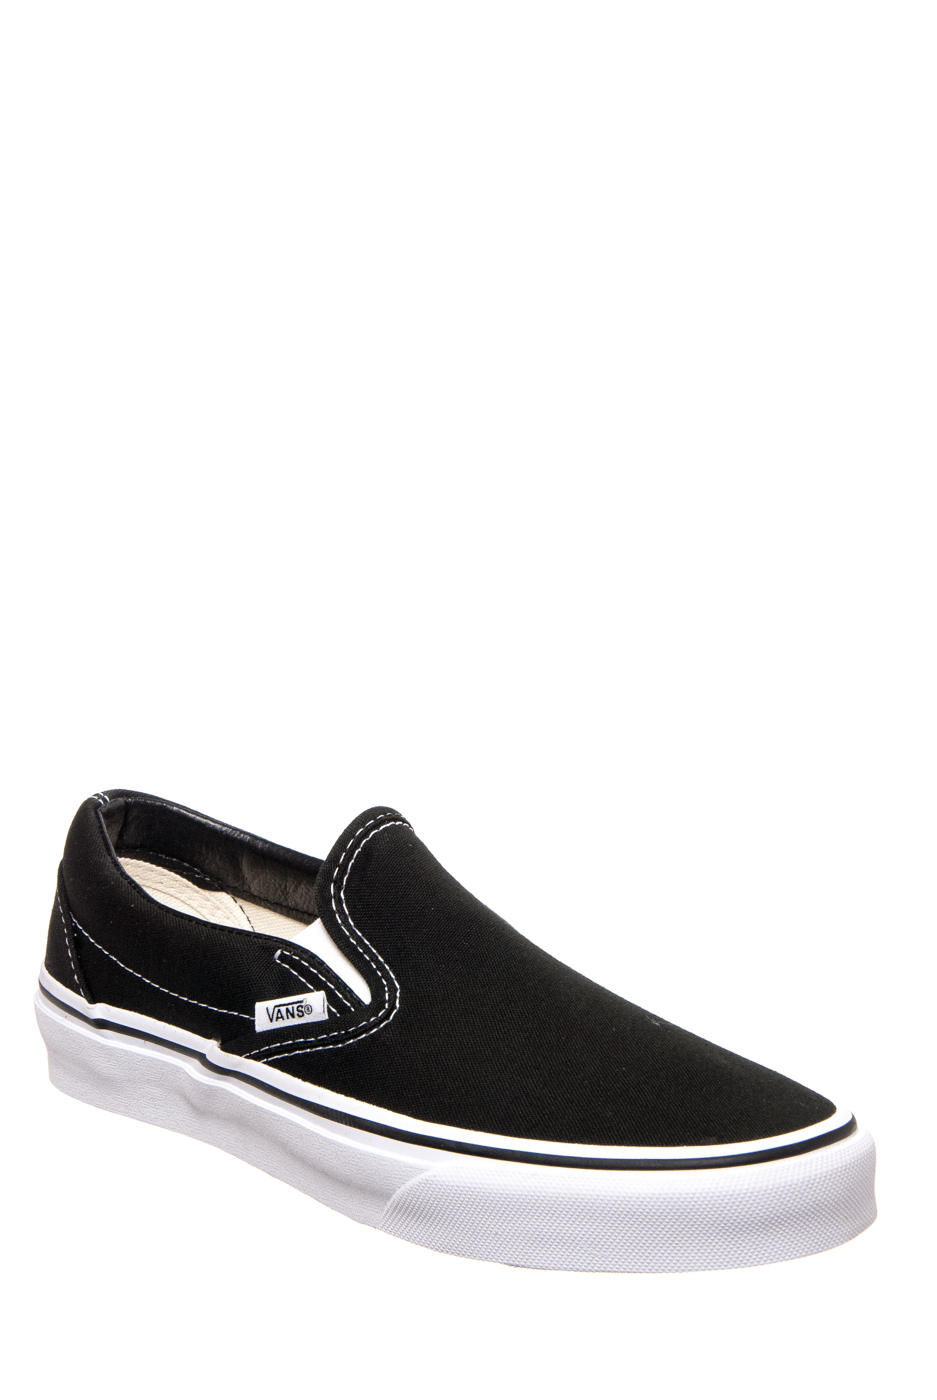 VANS Unisex Classic Slip On Sneakers - Black